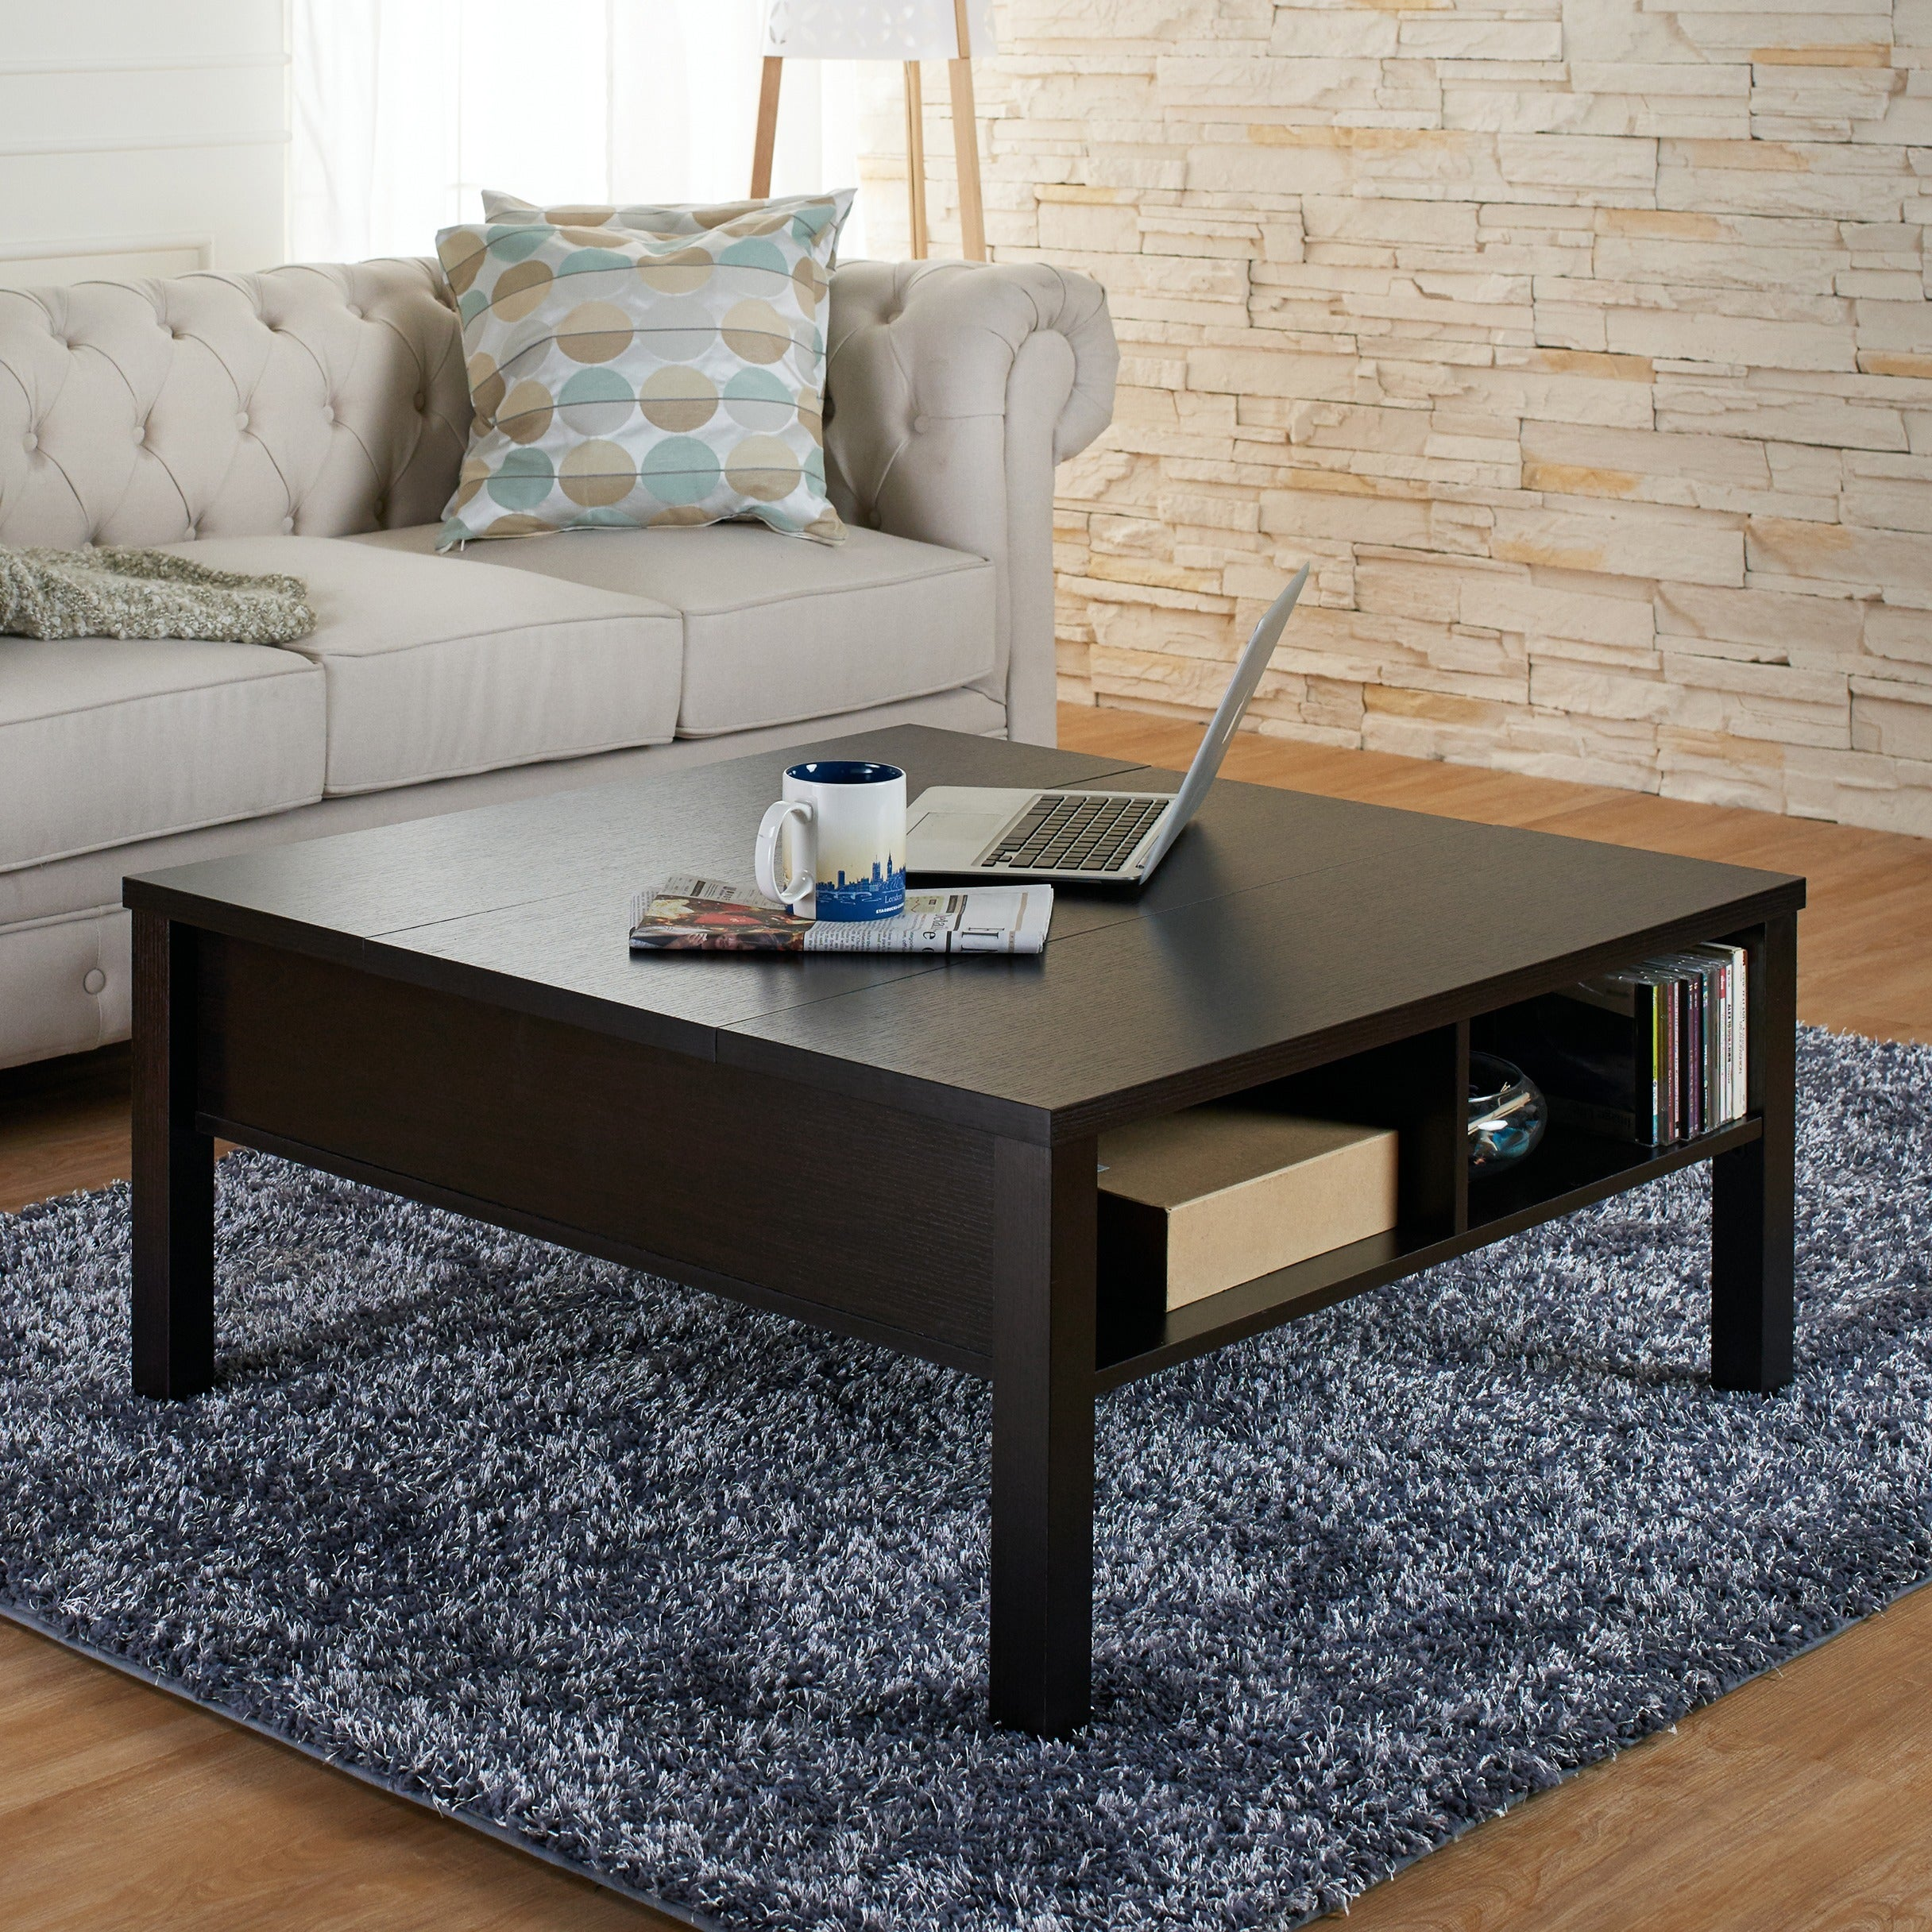 Furniture of America Lettani Cappuccino Slide out Coffee Table